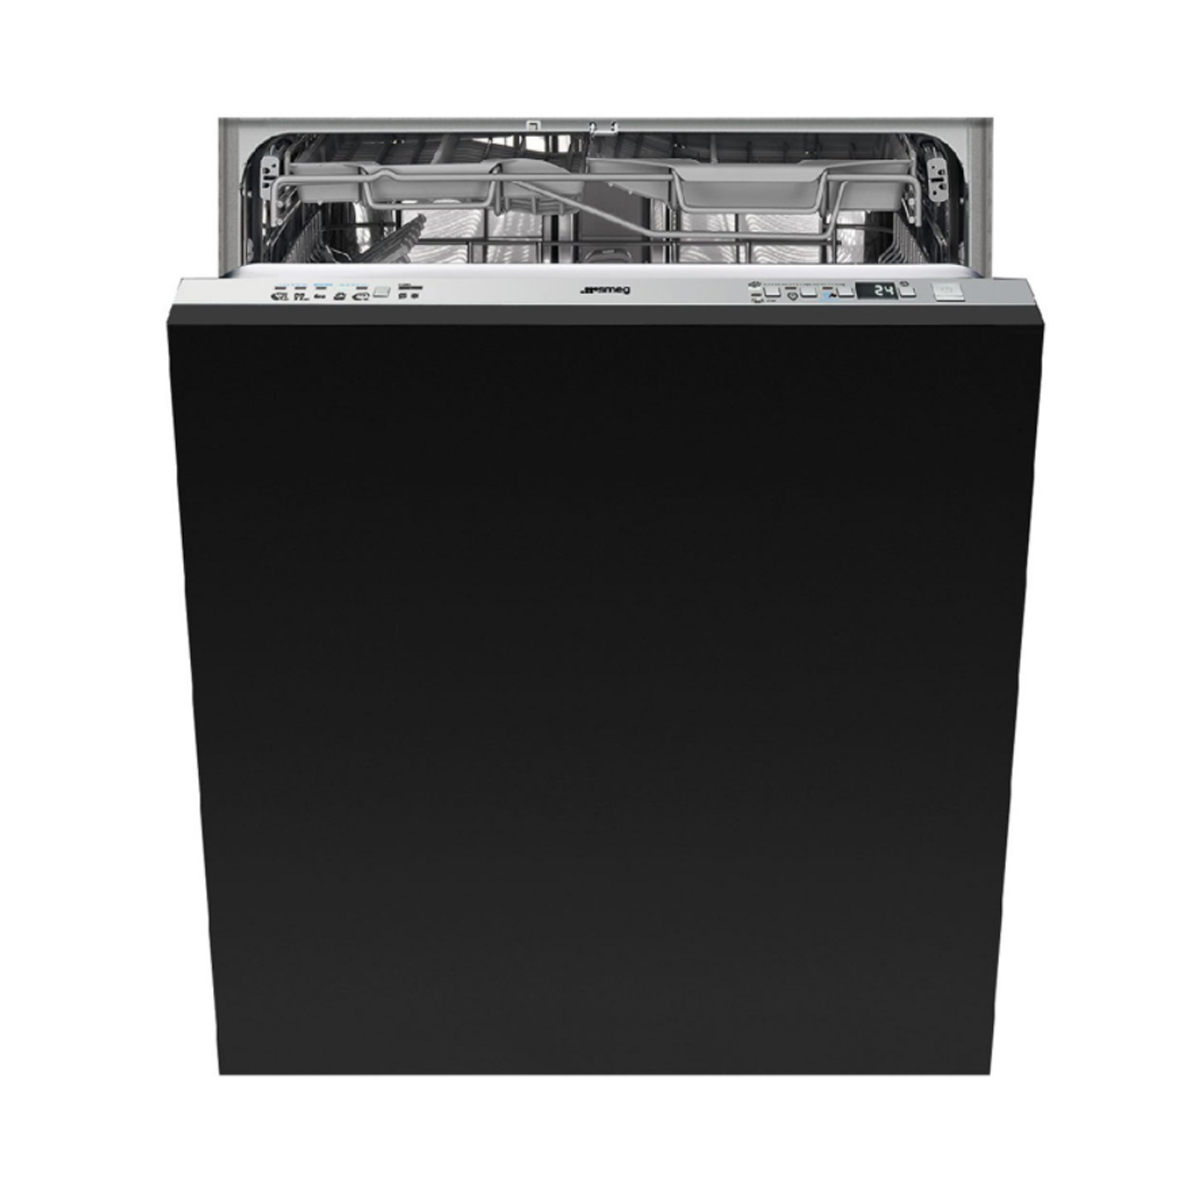 Smeg DWAFI6D15T Diamond Series Fully Integrated Dishwasher